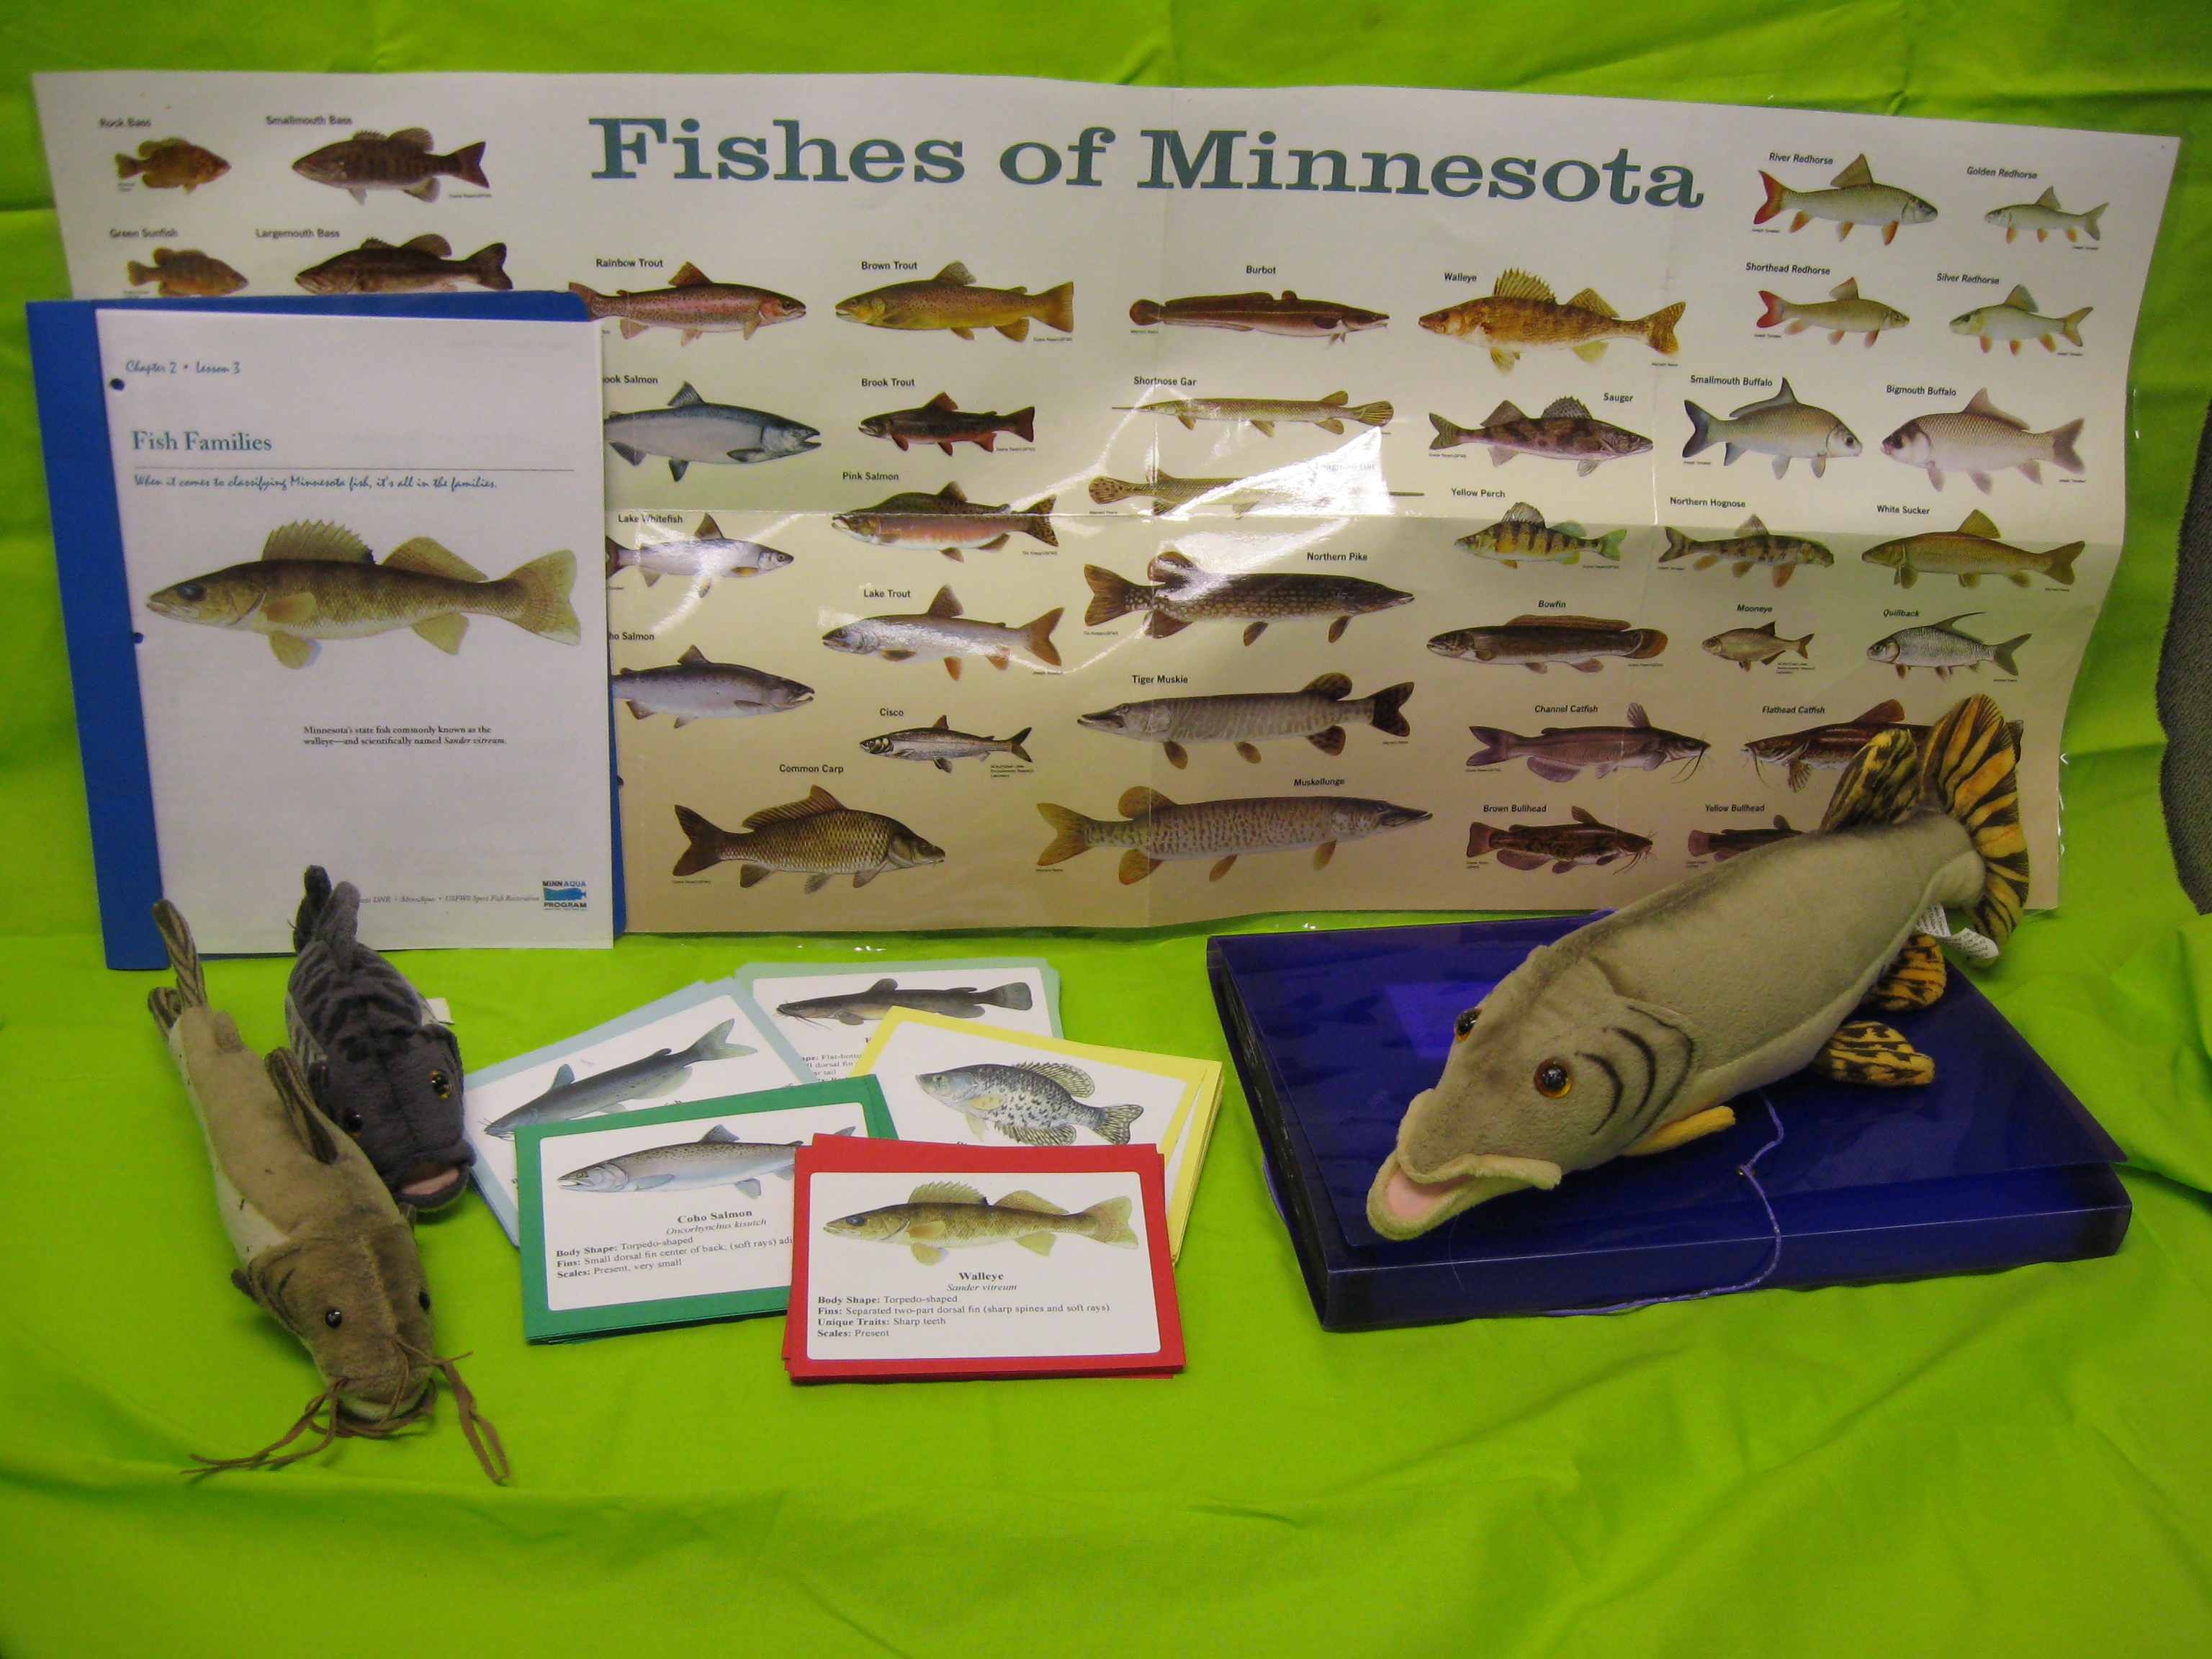 Materials for Fish Families